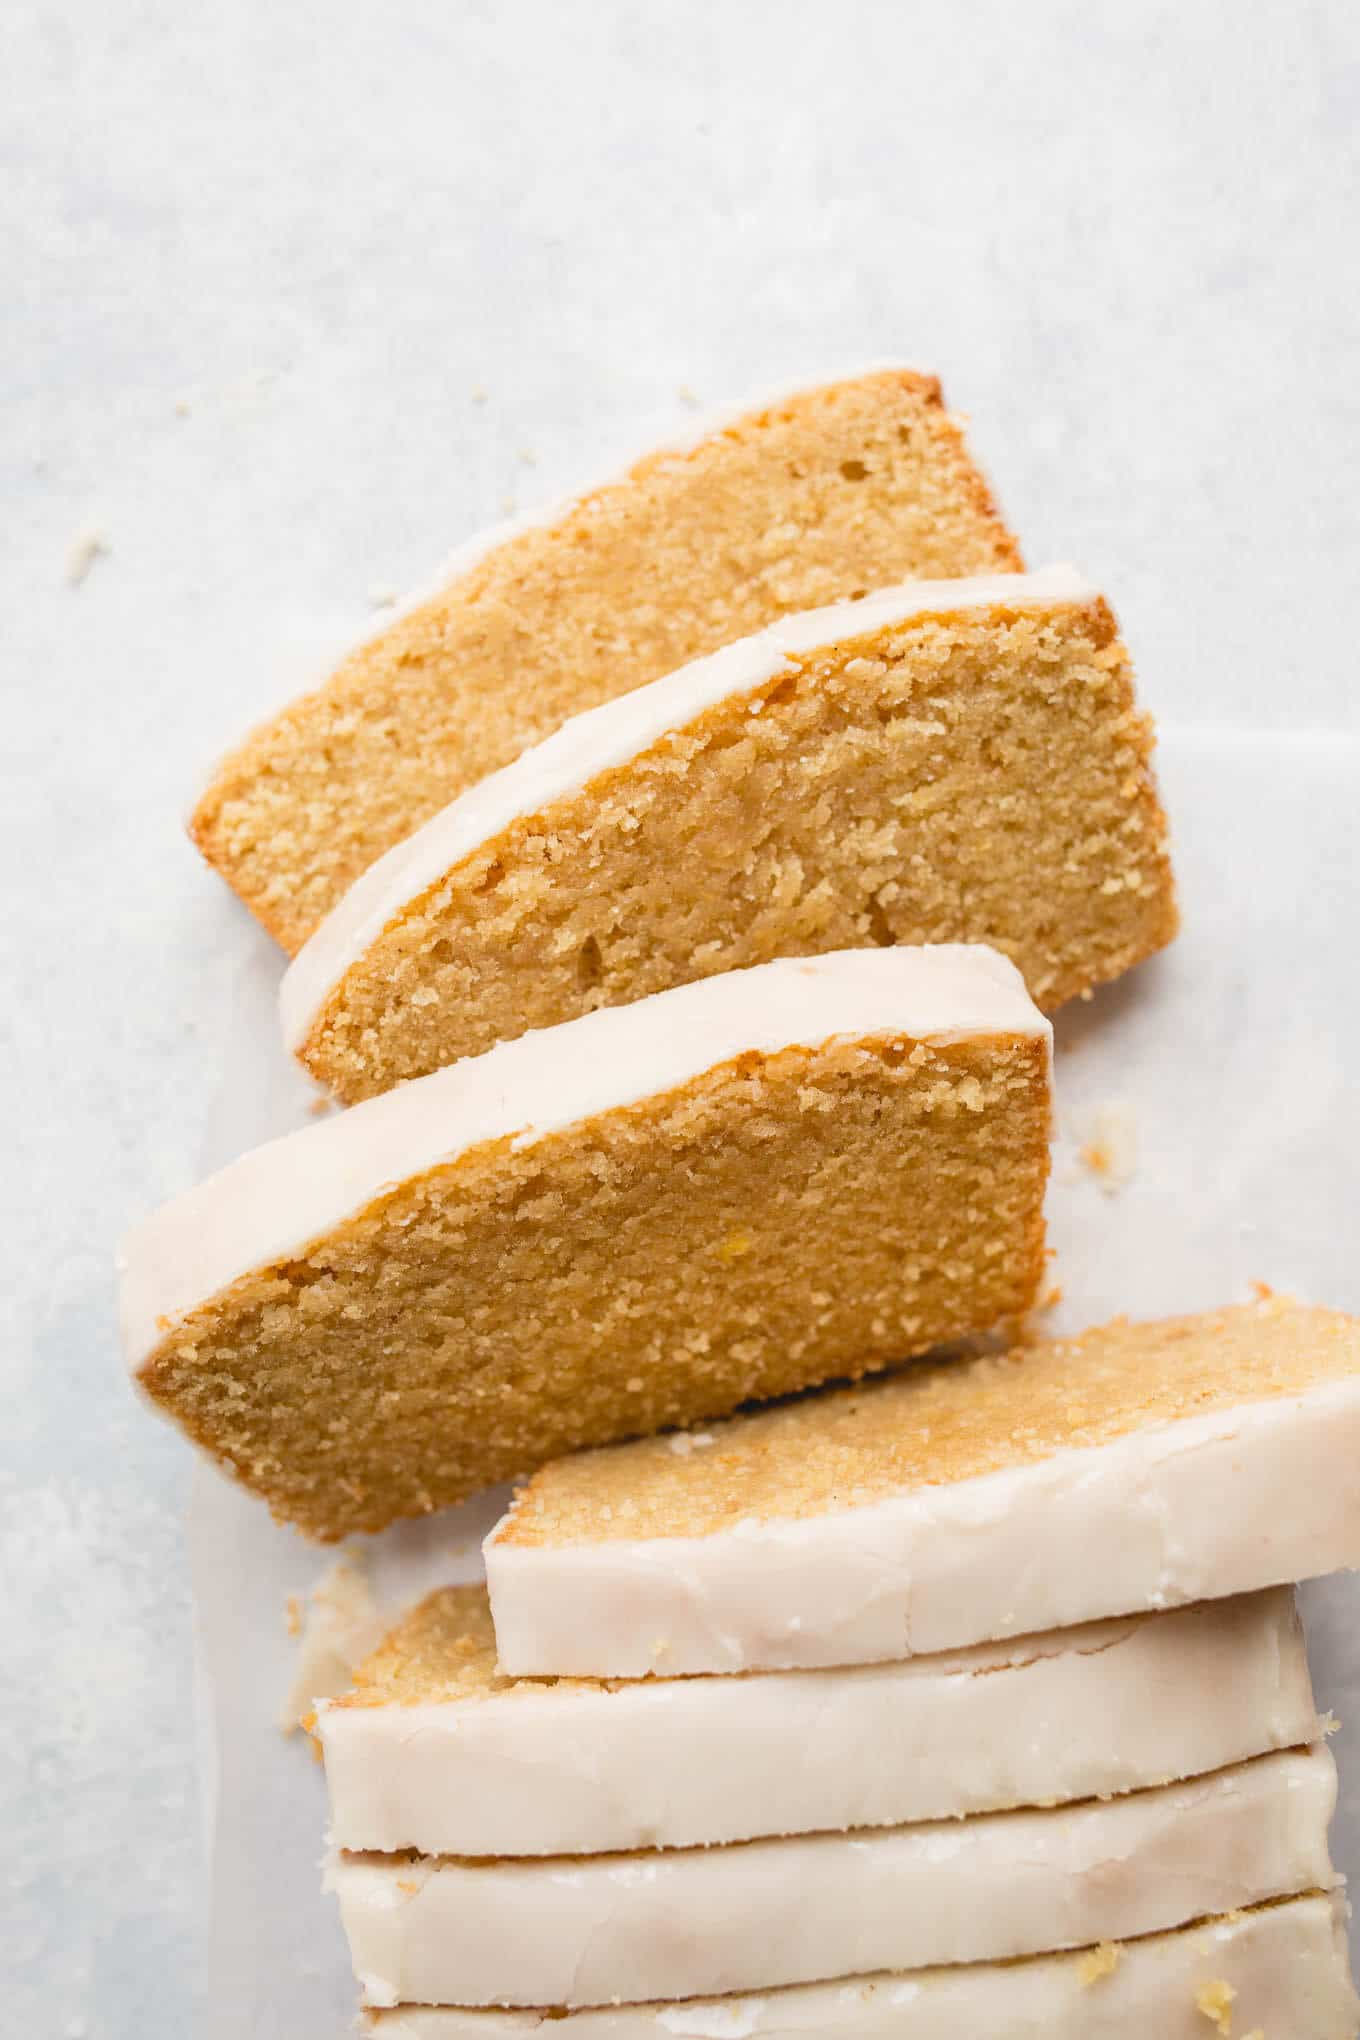 Gluten-Free Iced Lemon Pound Cake made from almond flour, white rice flour, and cornstarch, fresh lemon juice and lemon zest, and coated in a lemon icing glaze. Sweet, tart, and delicious. Gluten-free, dairy-free.